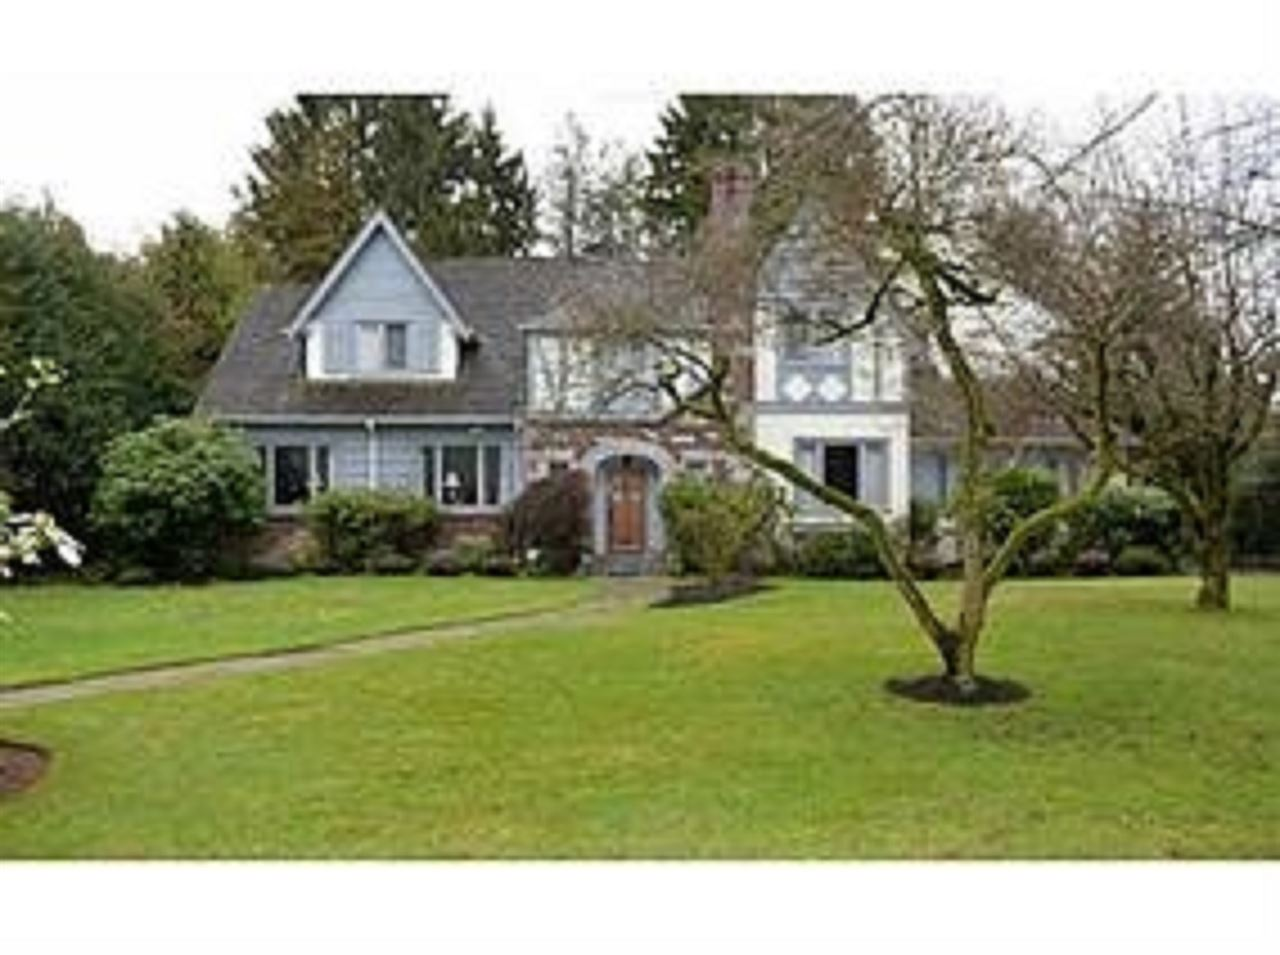 A rare opportunity to own this classic shaughnessy home  at beatiful  tree lined street . This pefect  south facing  park  like lot with  100'  frontage,  164 depth , private garden and back lane.   Inside & out with leaded windows, bordered oak hardwood floors, keystone entry, oak door & brick, stone, stucco & shingle exterior.  . Gracious  and spacious with entertainment sized living & dining rooms, sitting room & cozy wood paneled den/ office. Period kitchen with eating area. Large private patio/ deck off dining, steps down to fenced yard & mature gardens.  . 4 brms, 2 baths up. Finished recreation room & den in basementt  with  high ceilings & lots of storage.  Close  to York House. Shaughnessy element  School  and  Hamber  secondary school .  Quiet location perfect for redevelopment